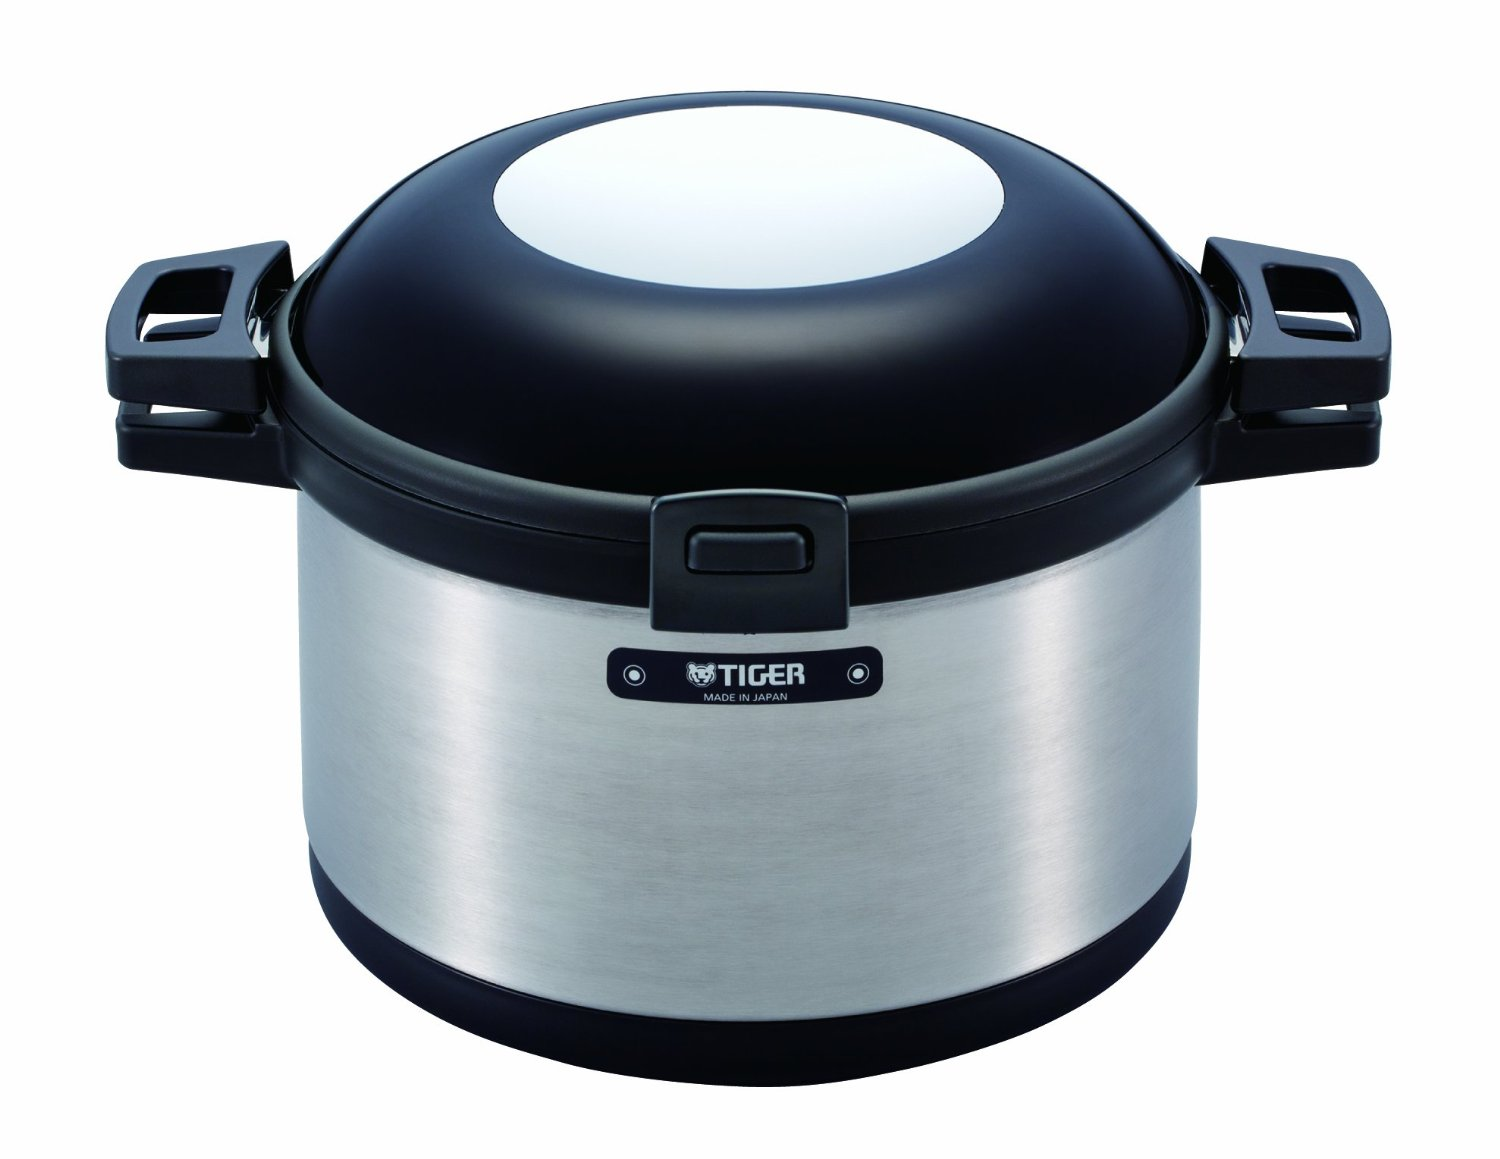 Tiger Nfia600Xs Stainless Thermal Magic Cooker 6.0L